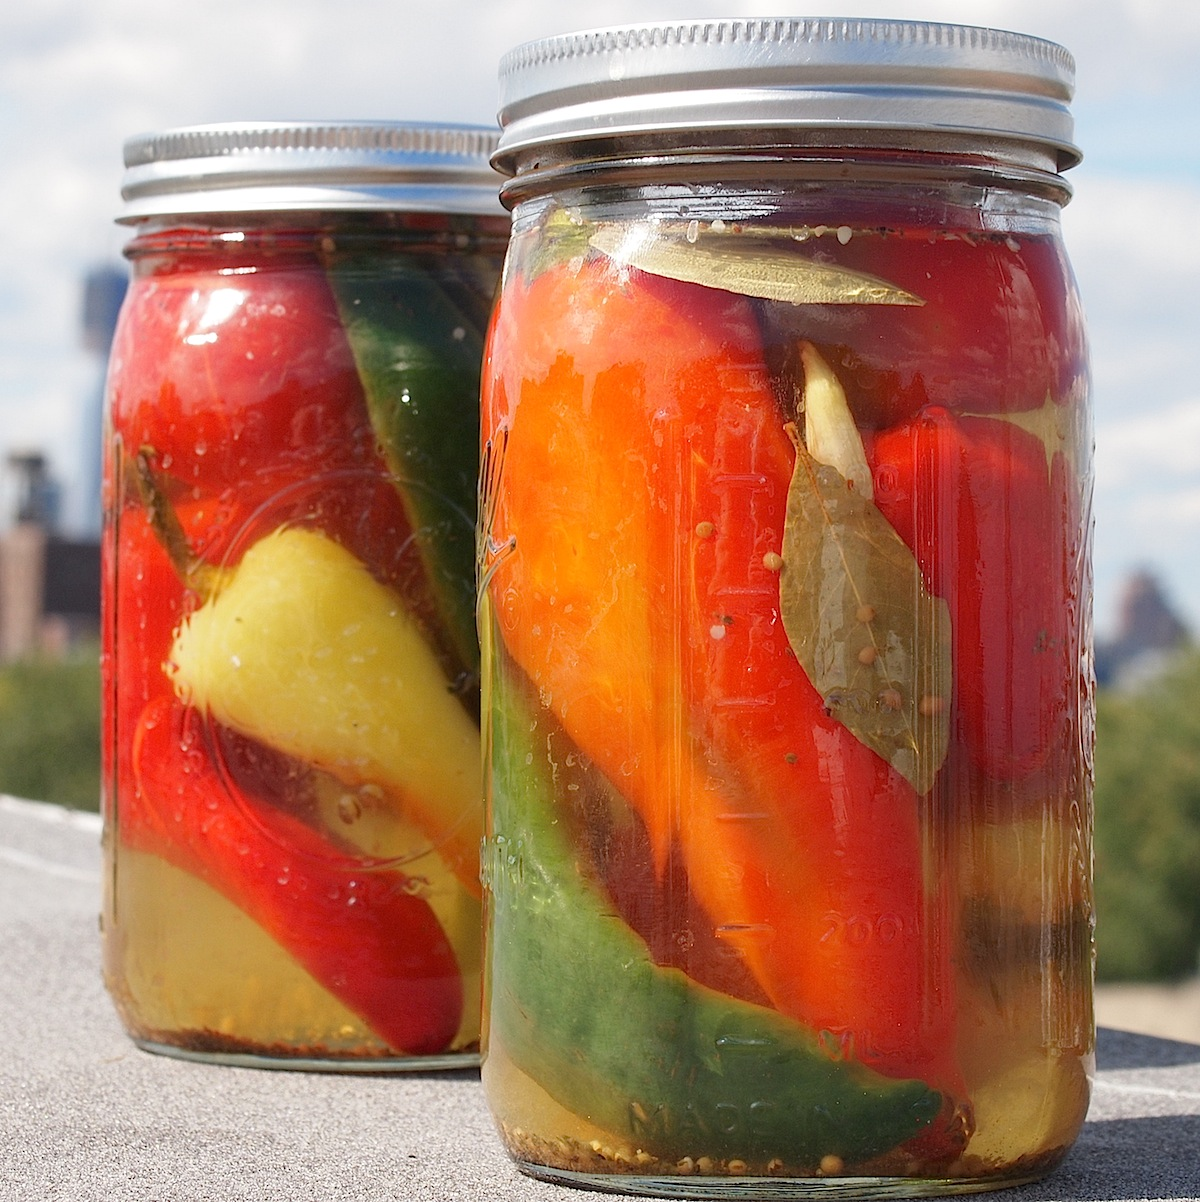 ... as though i should pickled chili peppers in mild pickled peppers green